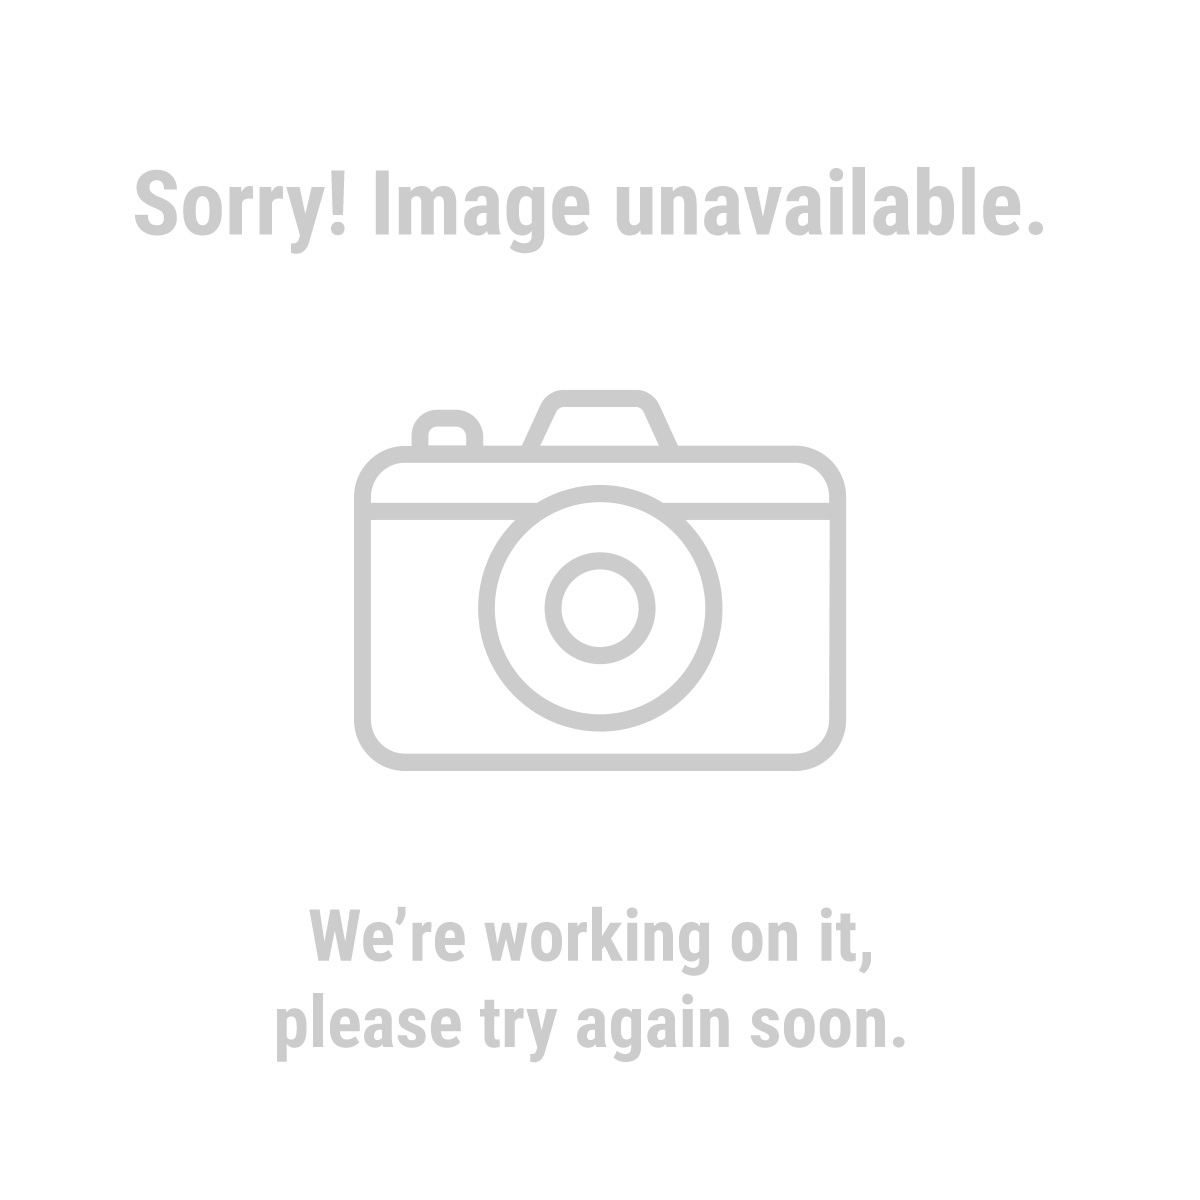 HFT 37477 12 Ft. 16 Gauge Electrical Indoor Extension Cord